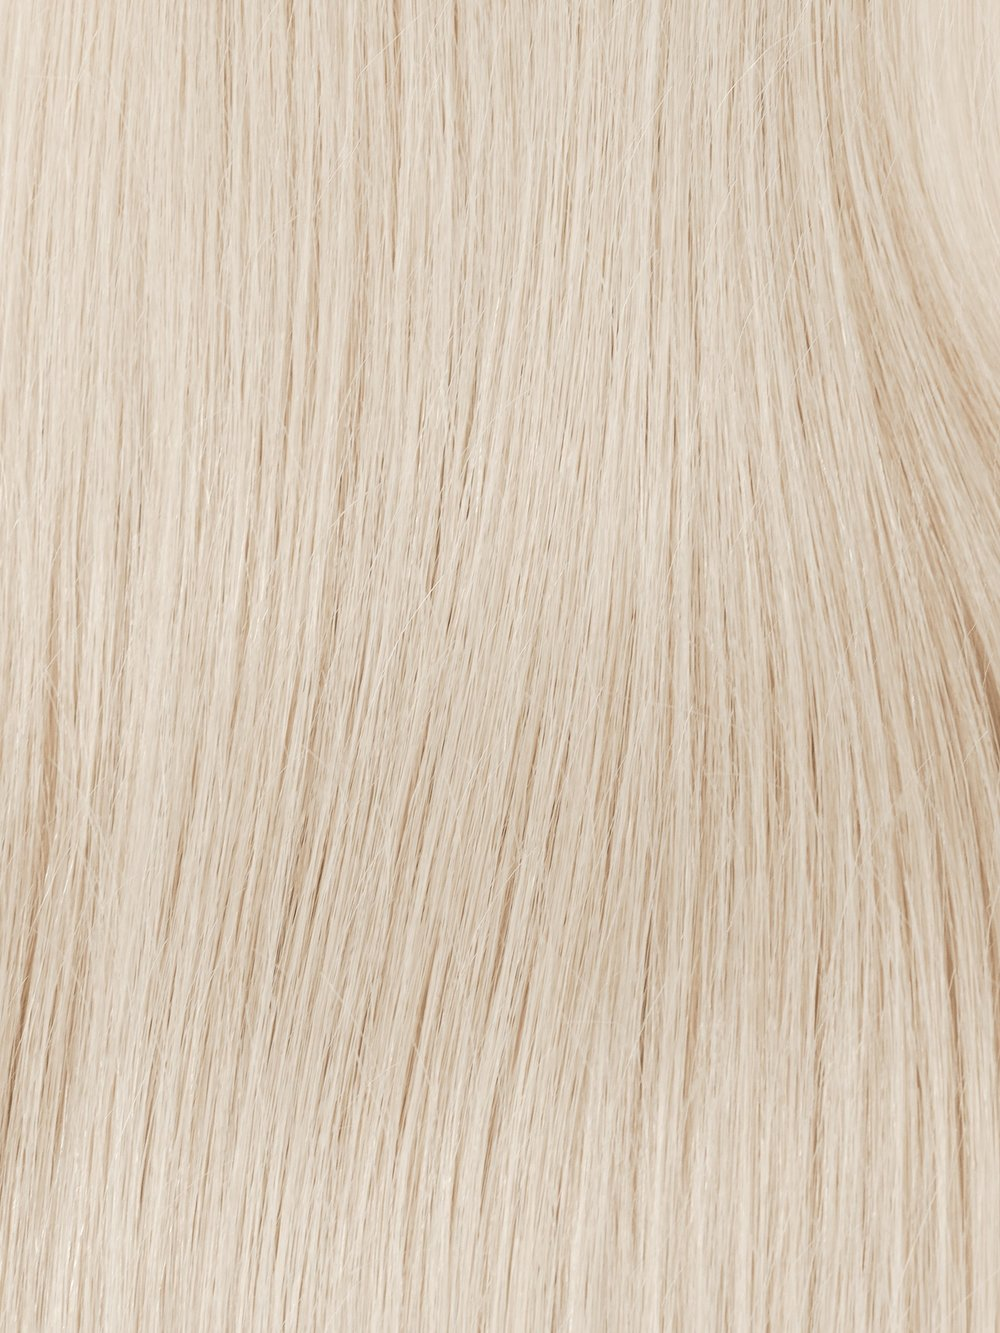 PLATINUM #60 - Our brightest blonde is near white in direct light. The cool toned platinum is mixed with wisps of yellow to achieve an overall adventurous neutral tone that is bound to turn heads wherever it goes.